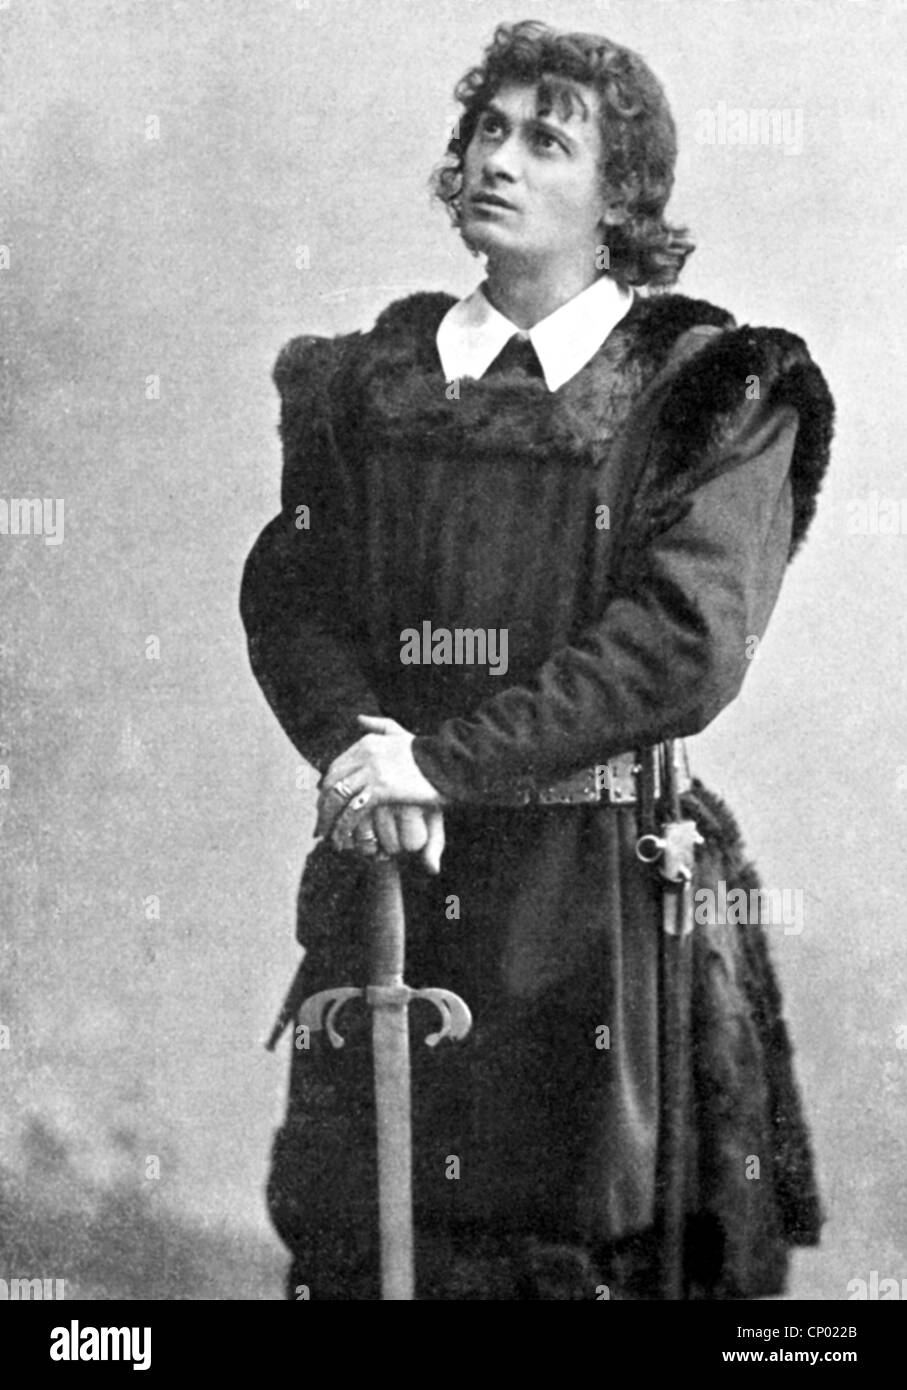 Kainz, Josef, 2.1.1858 - 20.9.1910, Austrian actor, as Hamlet in the play 'Hamlet' by William Shakespeare, - Stock Image